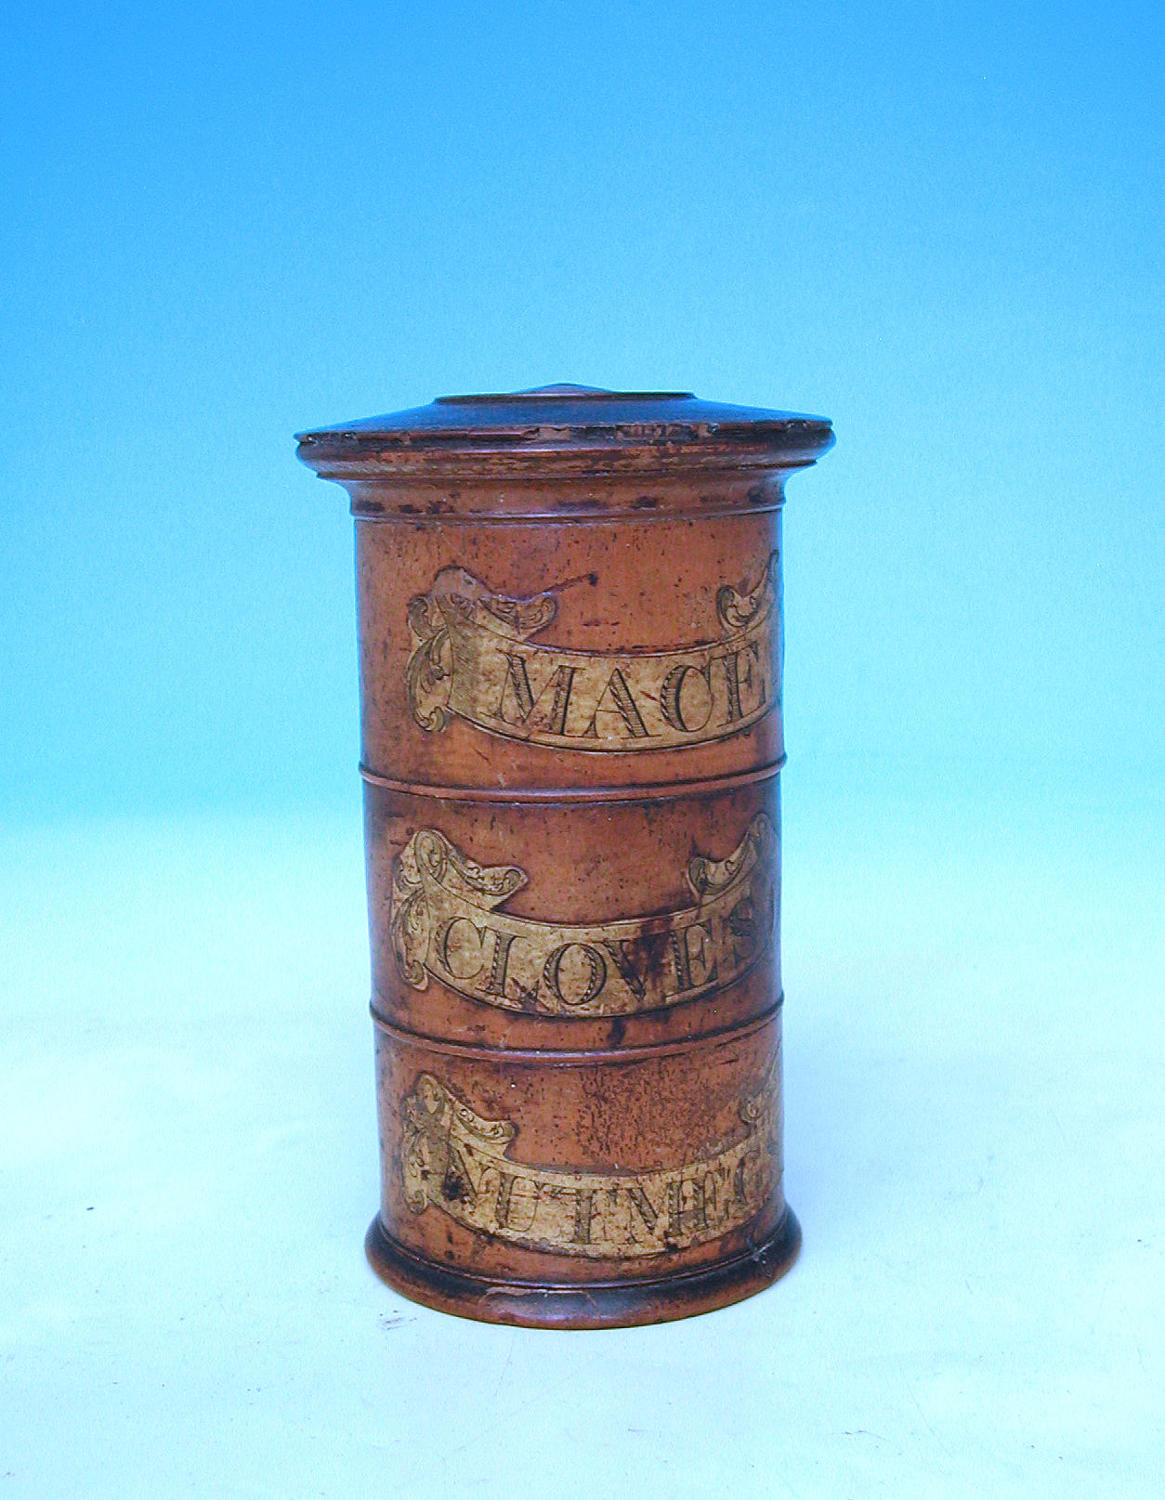 Antique 18thc/19thc Treen Spice Tower. English. C1780-C1800